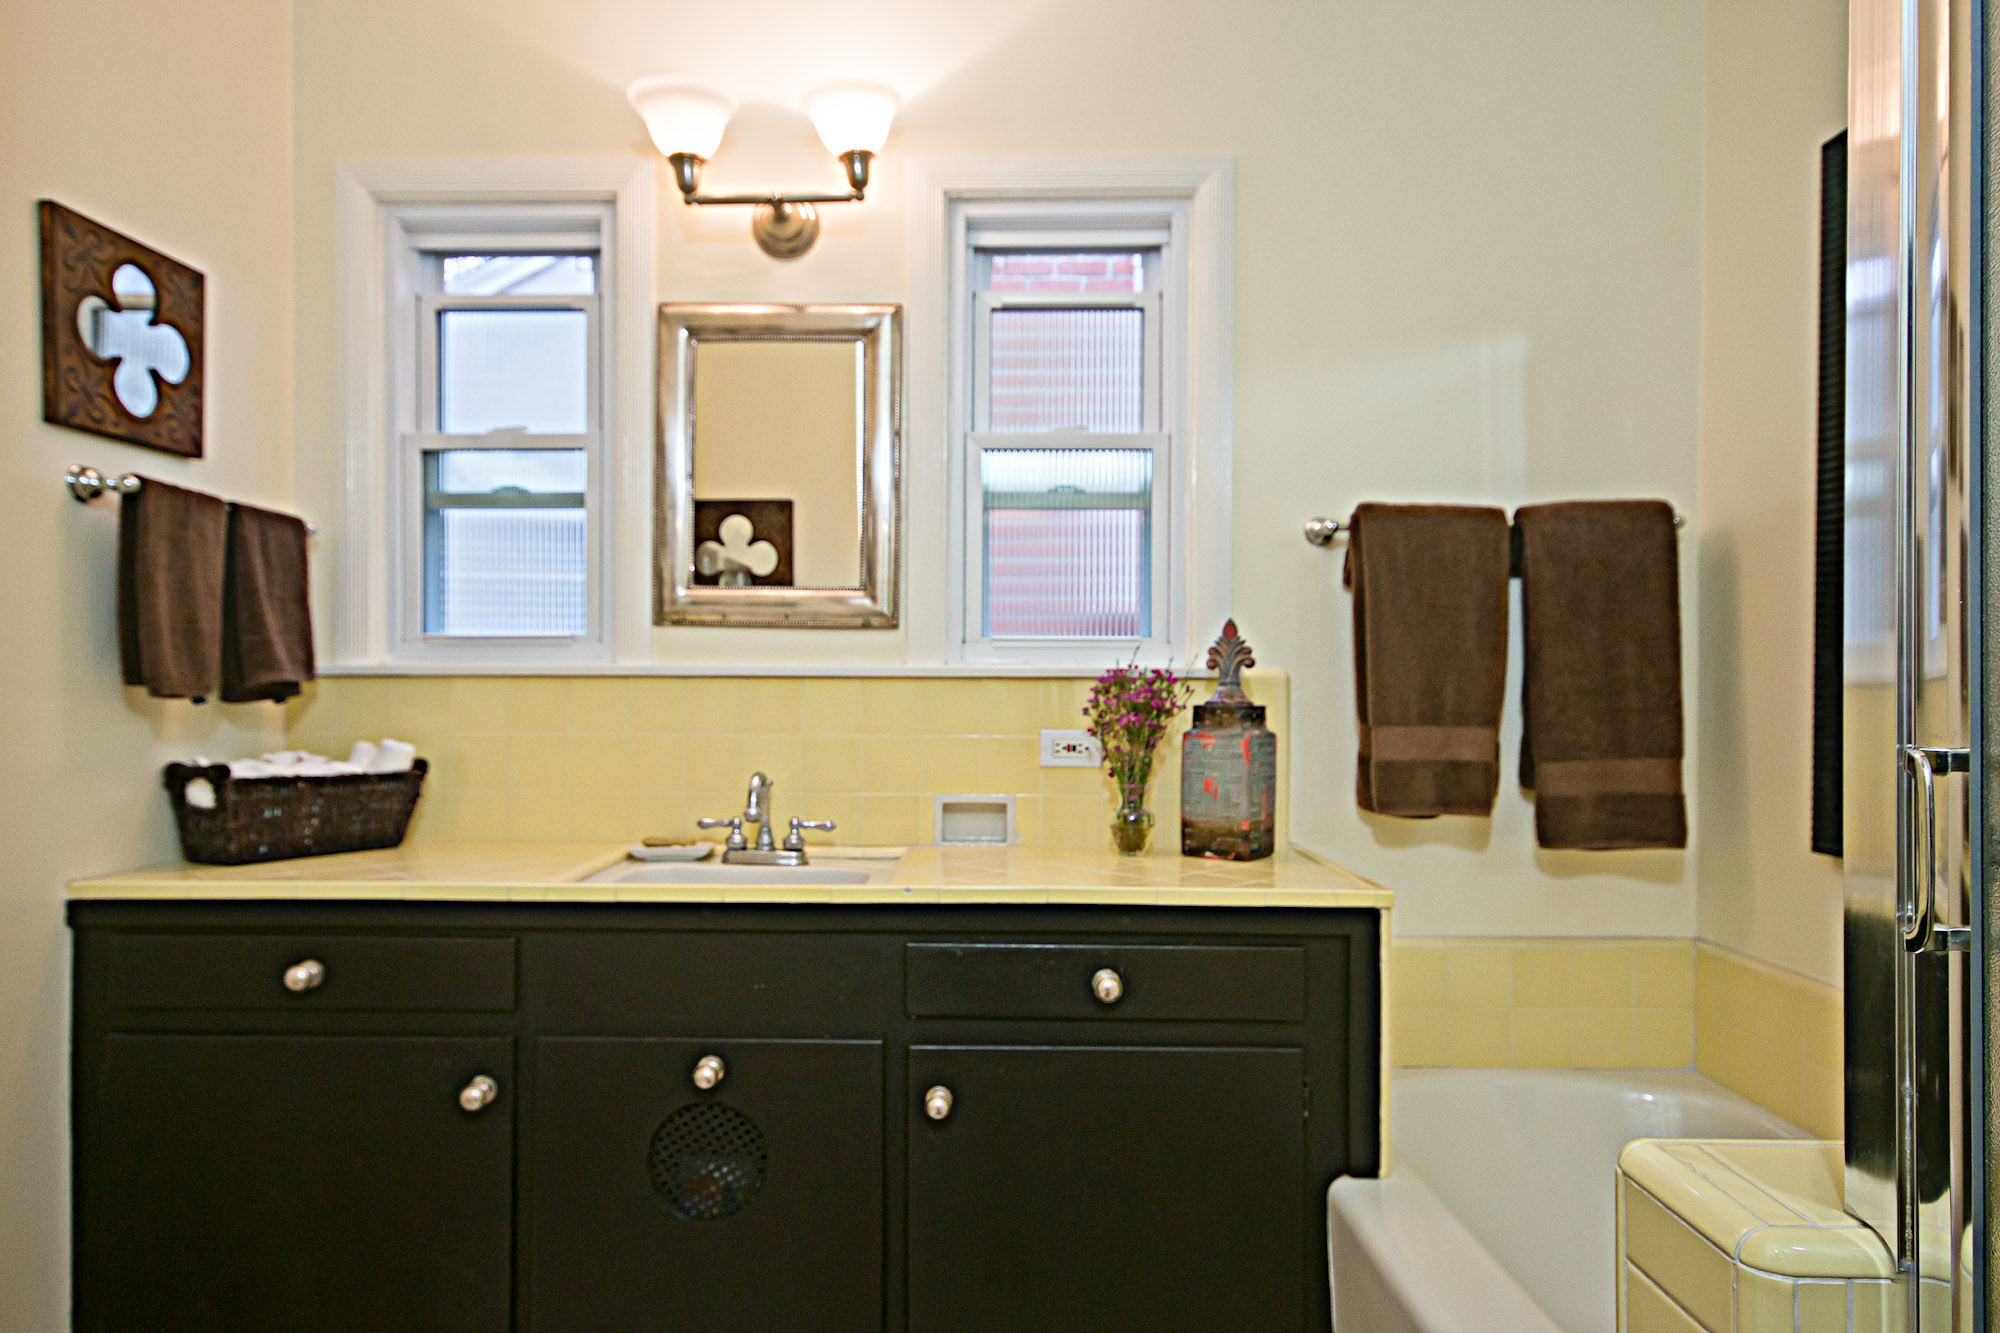 20140303-Hall Bathroom.jpg